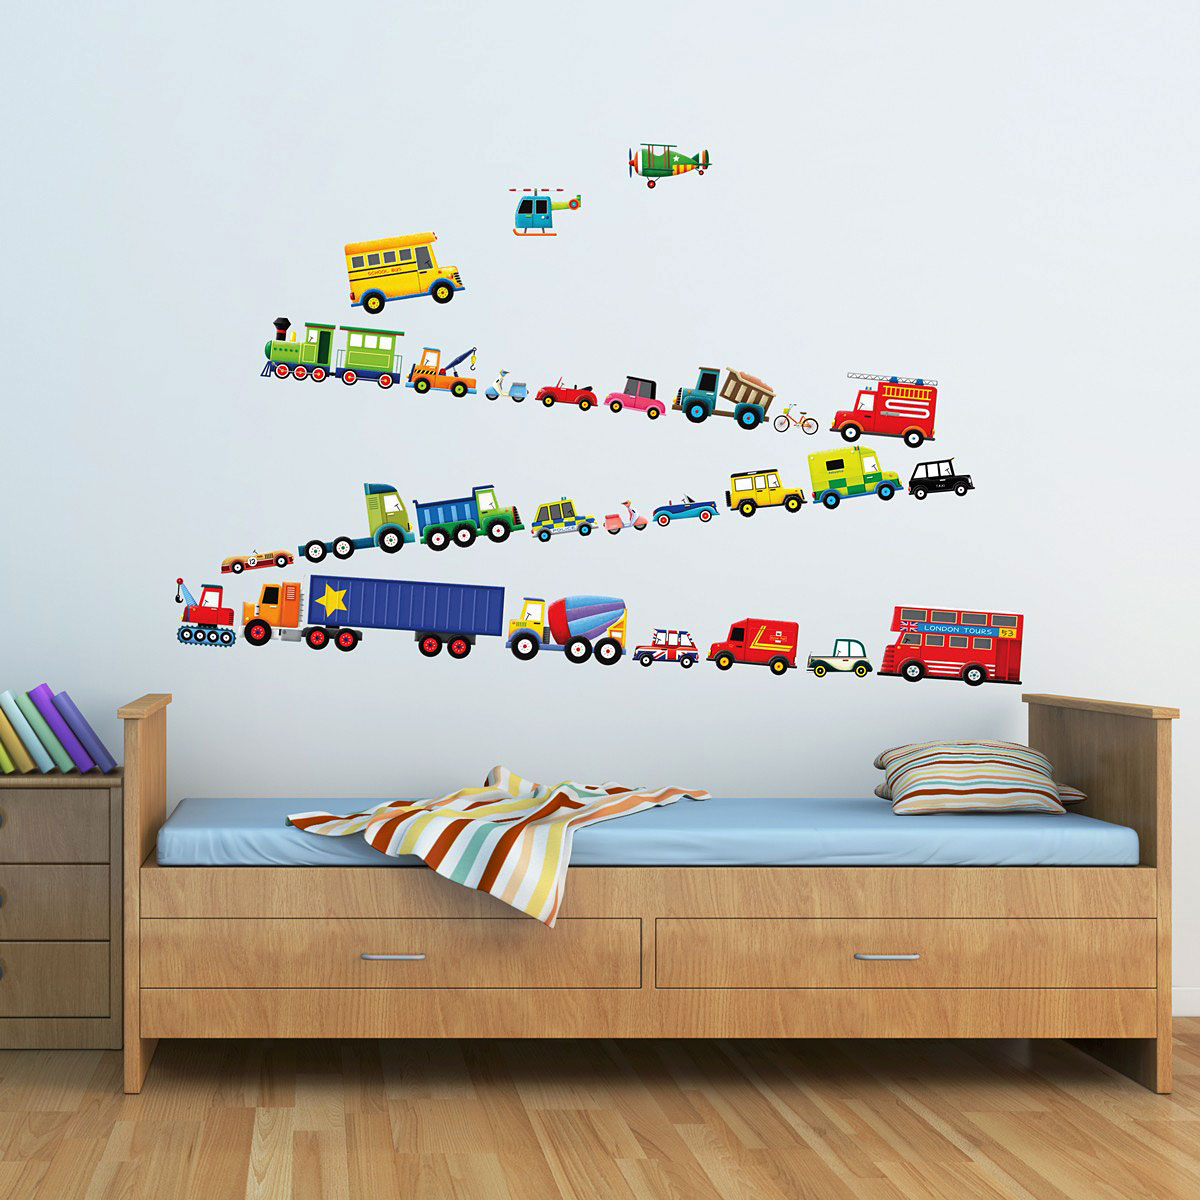 wandsticker lastkraftwagen transporter autos wandsticker kinderzimmer. Black Bedroom Furniture Sets. Home Design Ideas